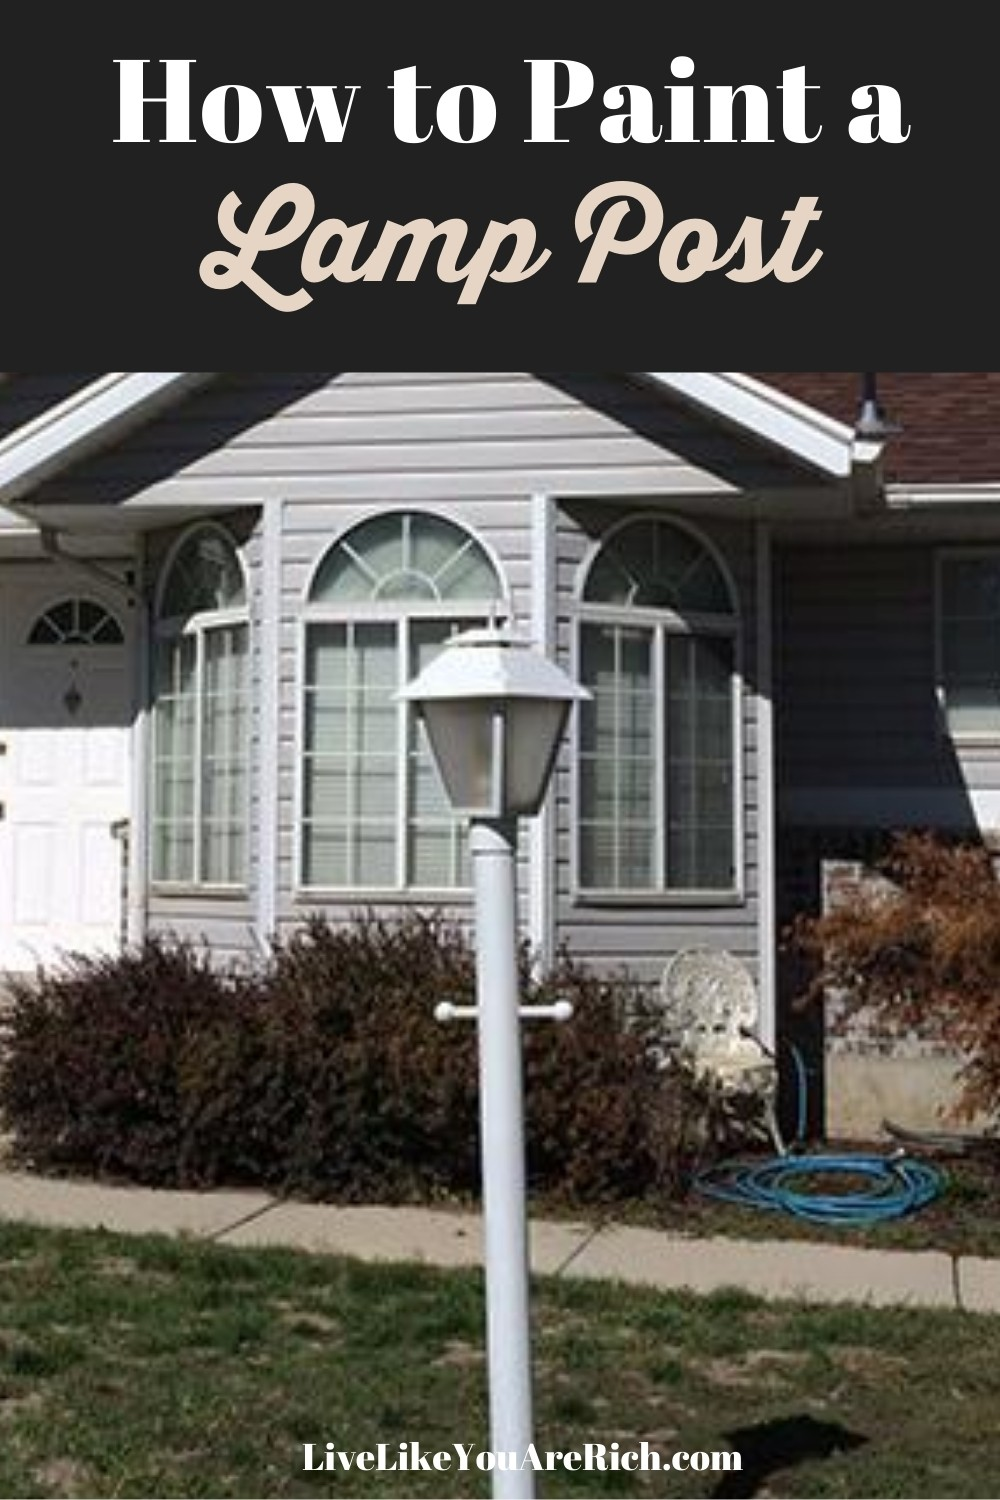 Our old house is mainly white blueish-grey siding and and brown. But our mailbox and lamp post are black and I really dislike the clash. So instead of buying a new lamp post, I decided to spray paint it. Sharing the steps on how I paint my lamp post.